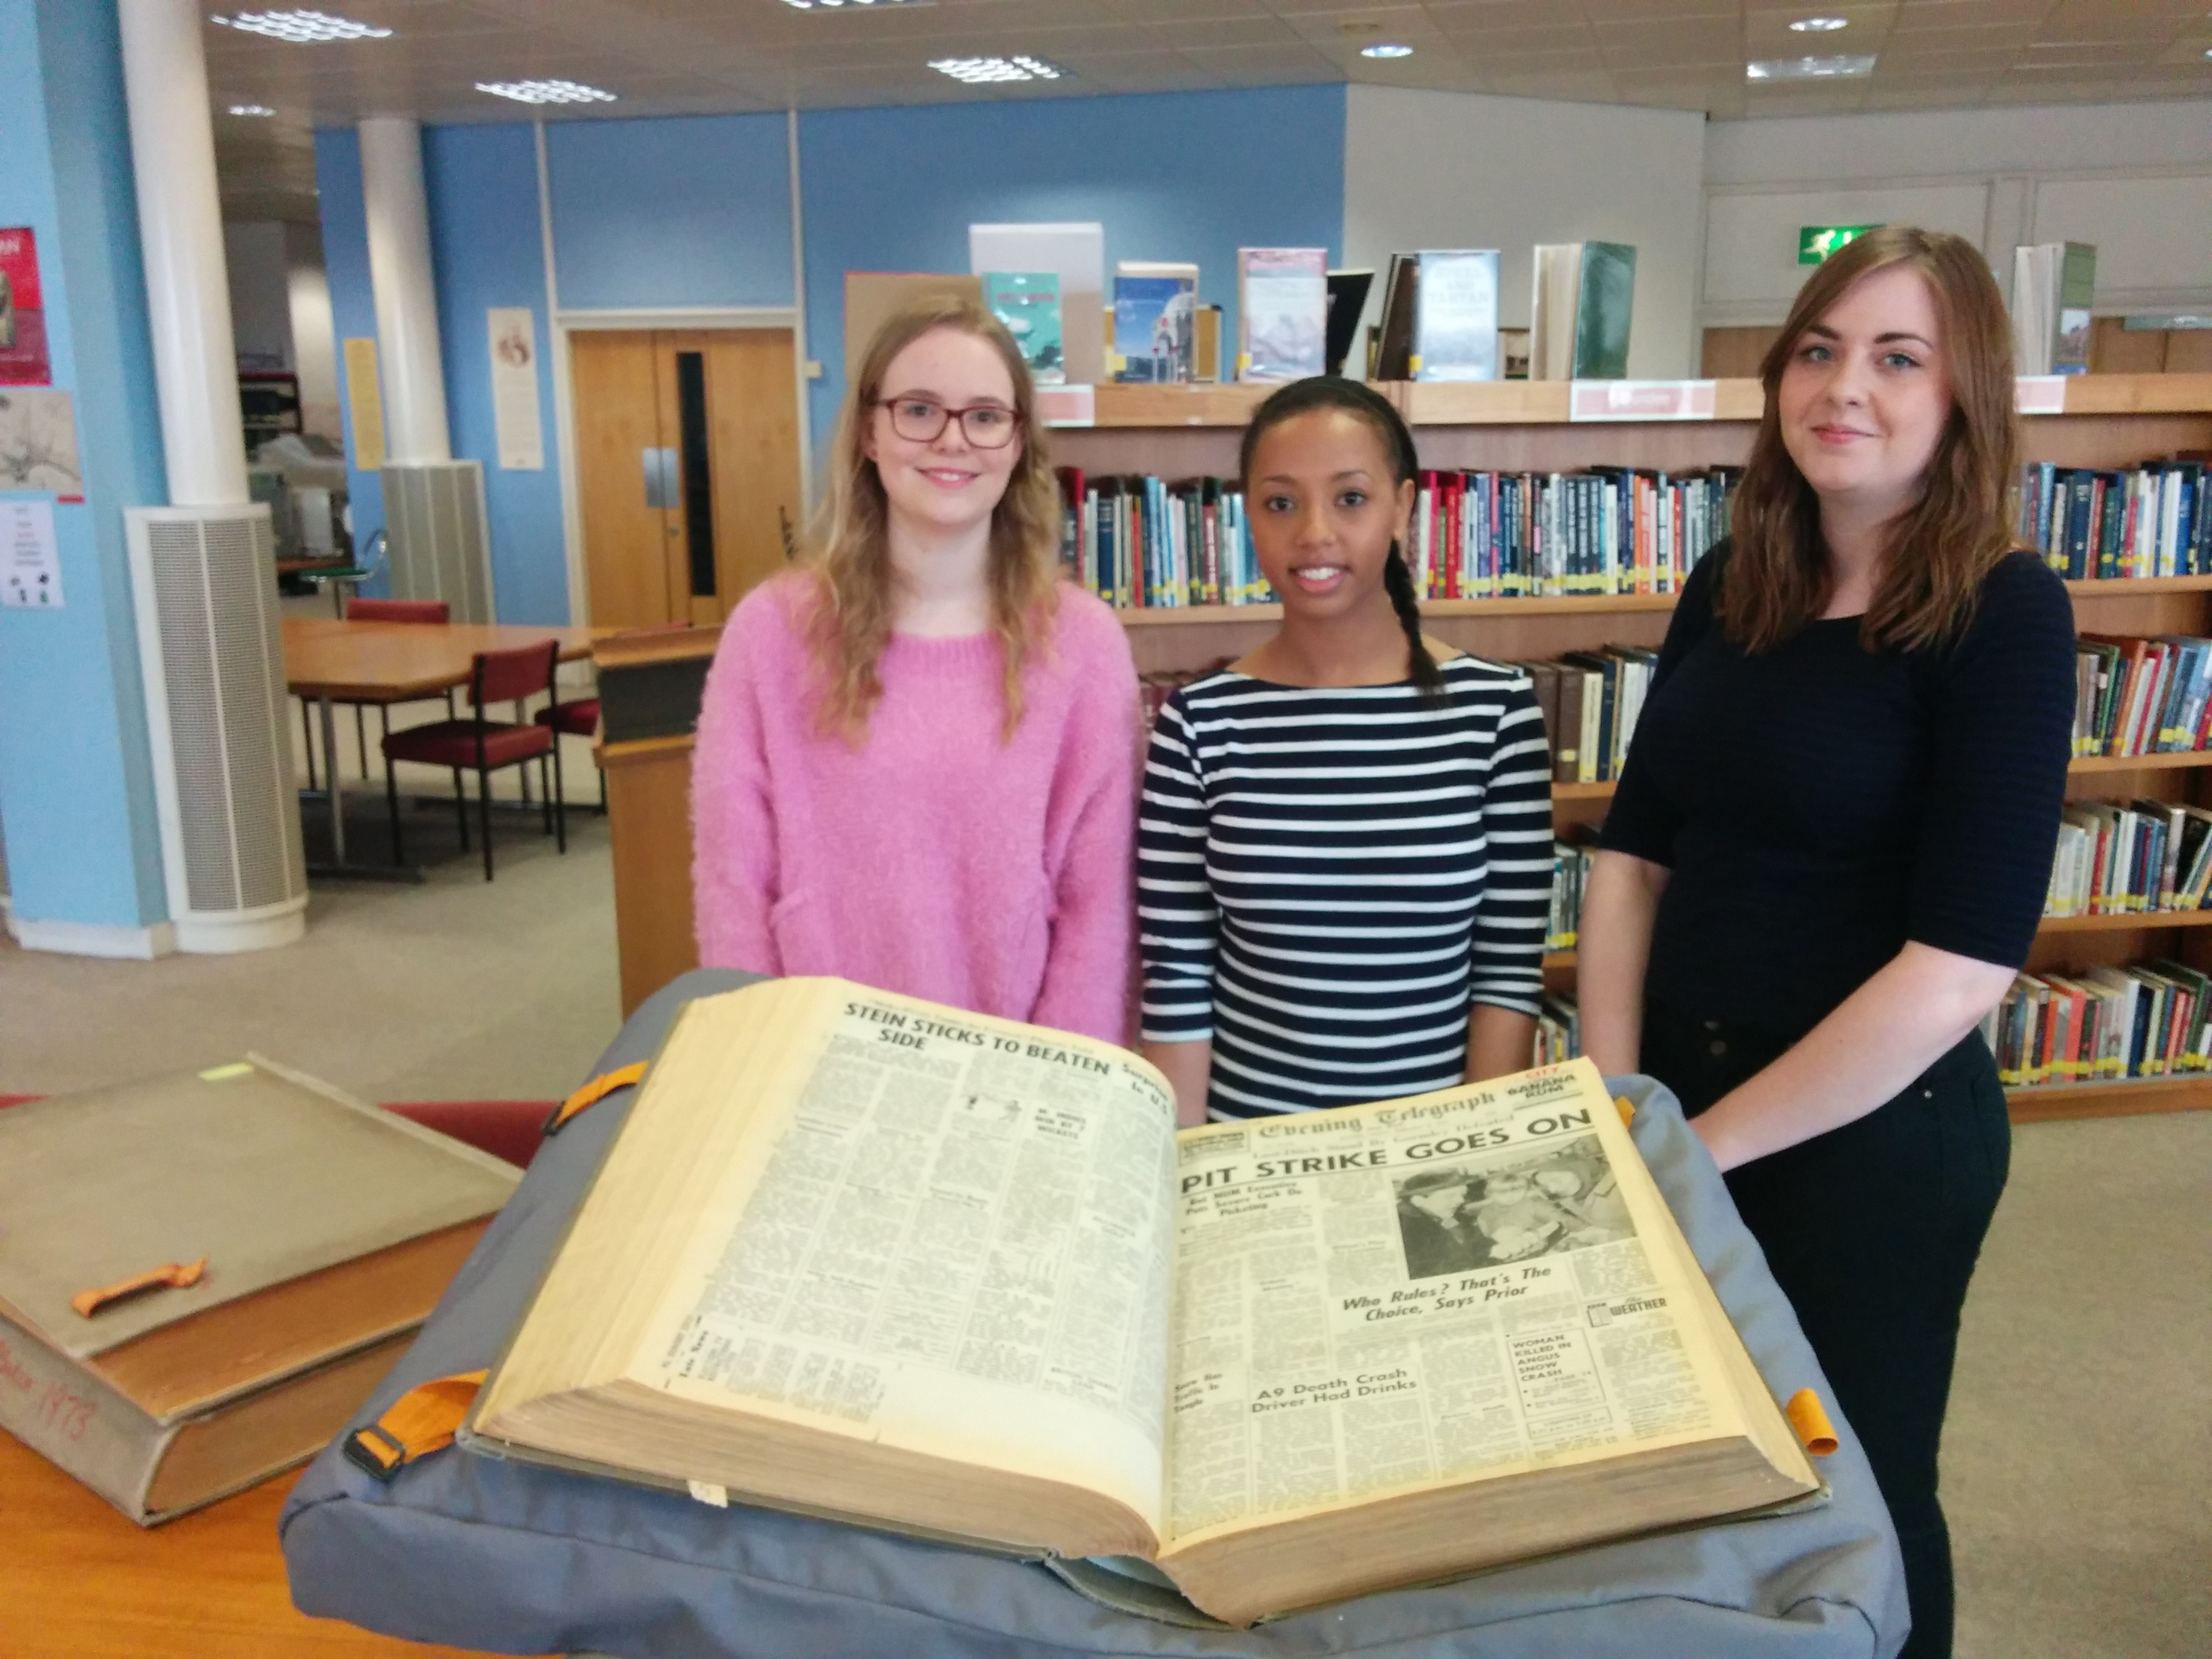 Abertay University forensic psychology students (l to r) Mhairi Anderson, Nesha Dixon an Amy Morrison who searched for missing persons reports.